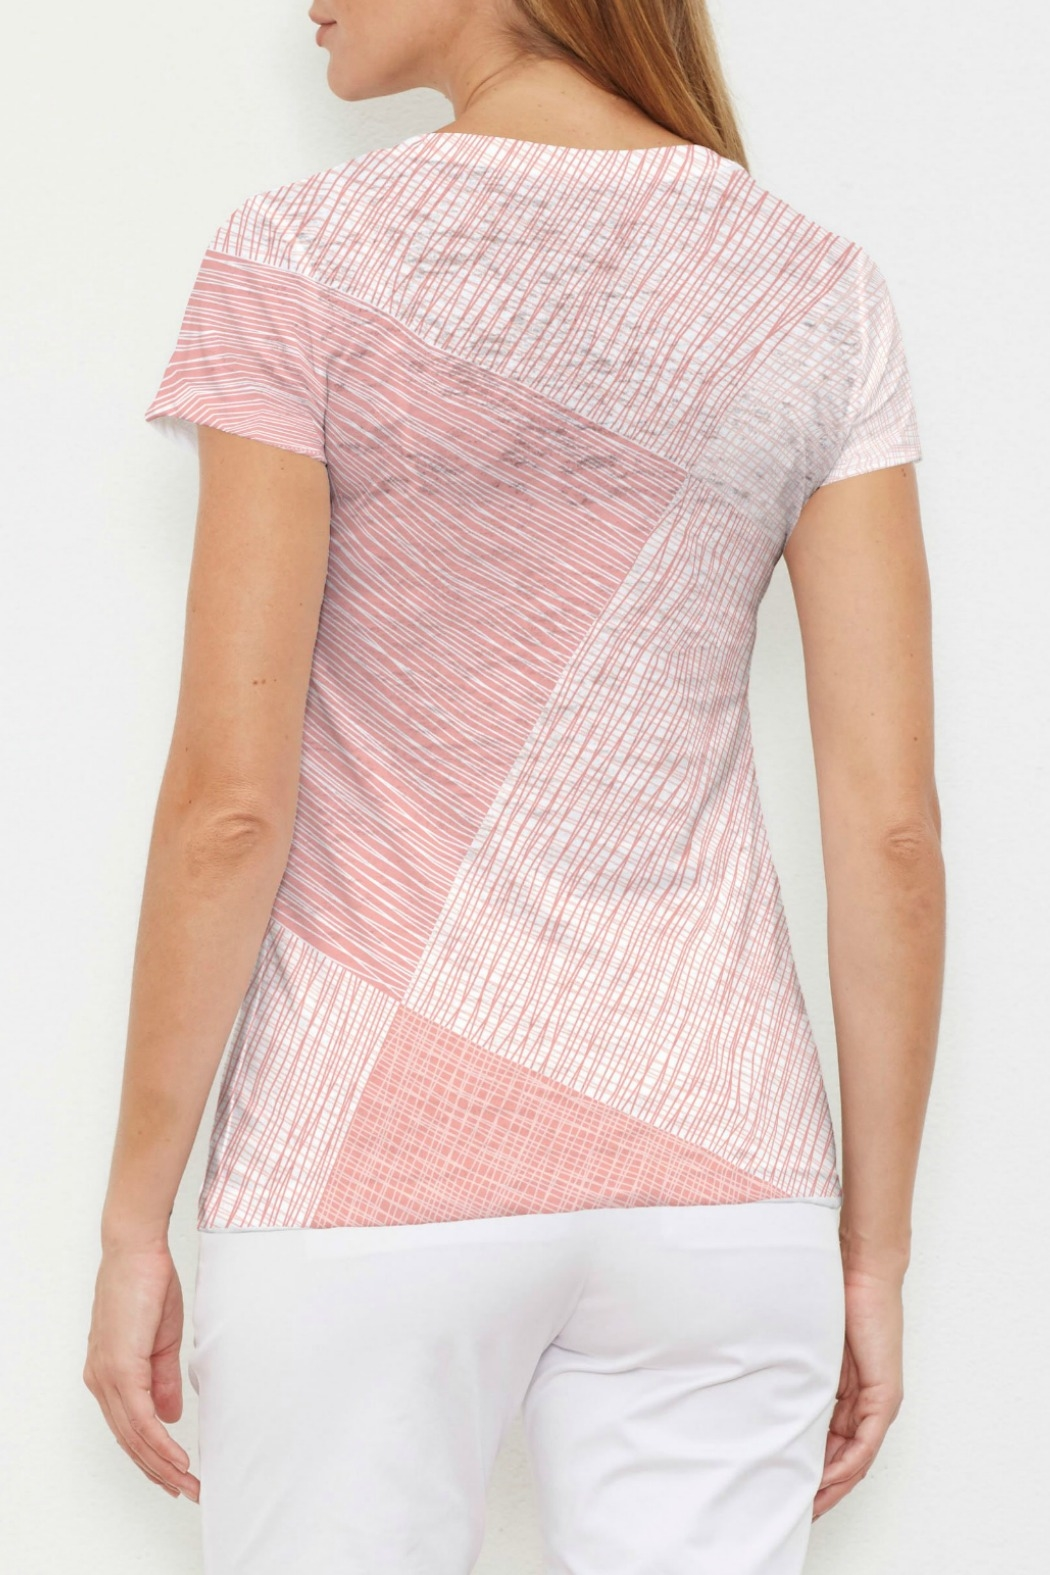 Whimsy Rose Sketch Coral V-Neck Tee - Front Full Image